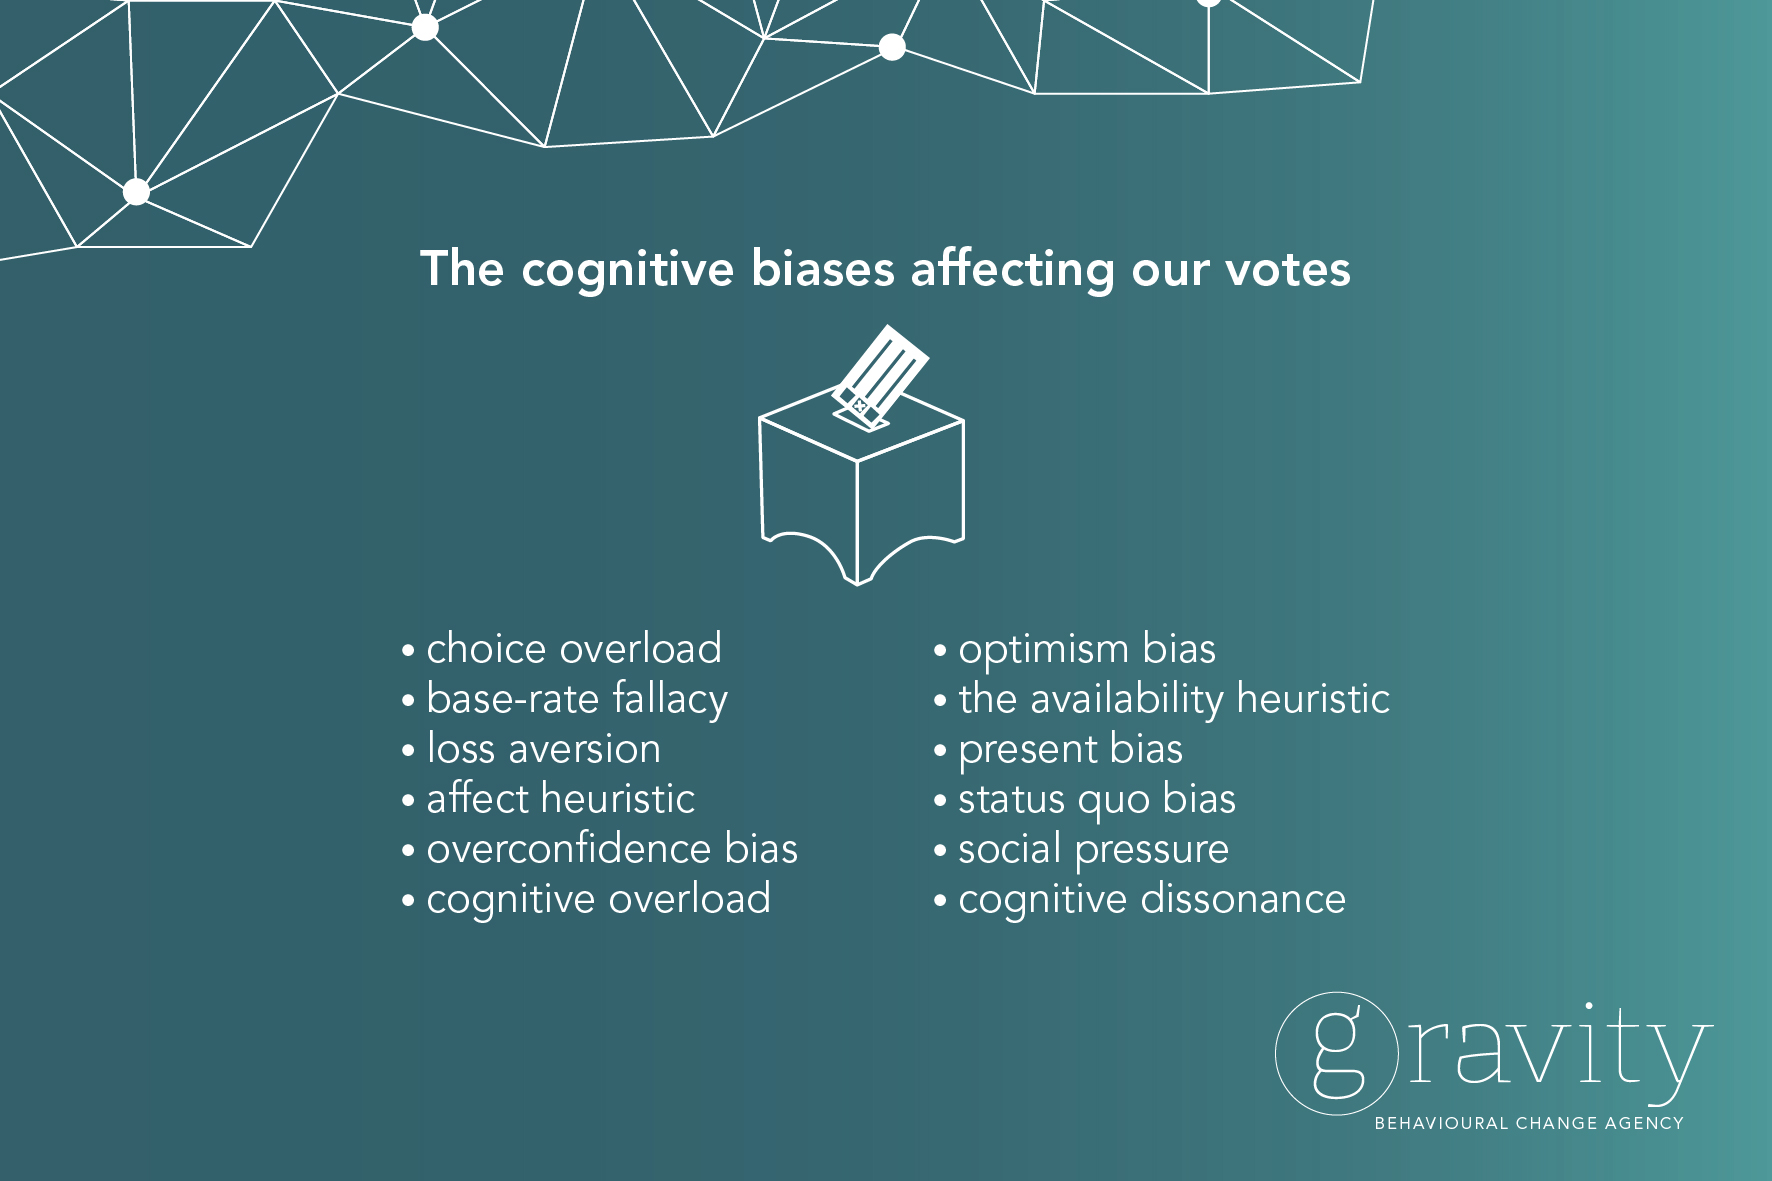 The_cognitive_biases_affecting_our_votes-01.jpg